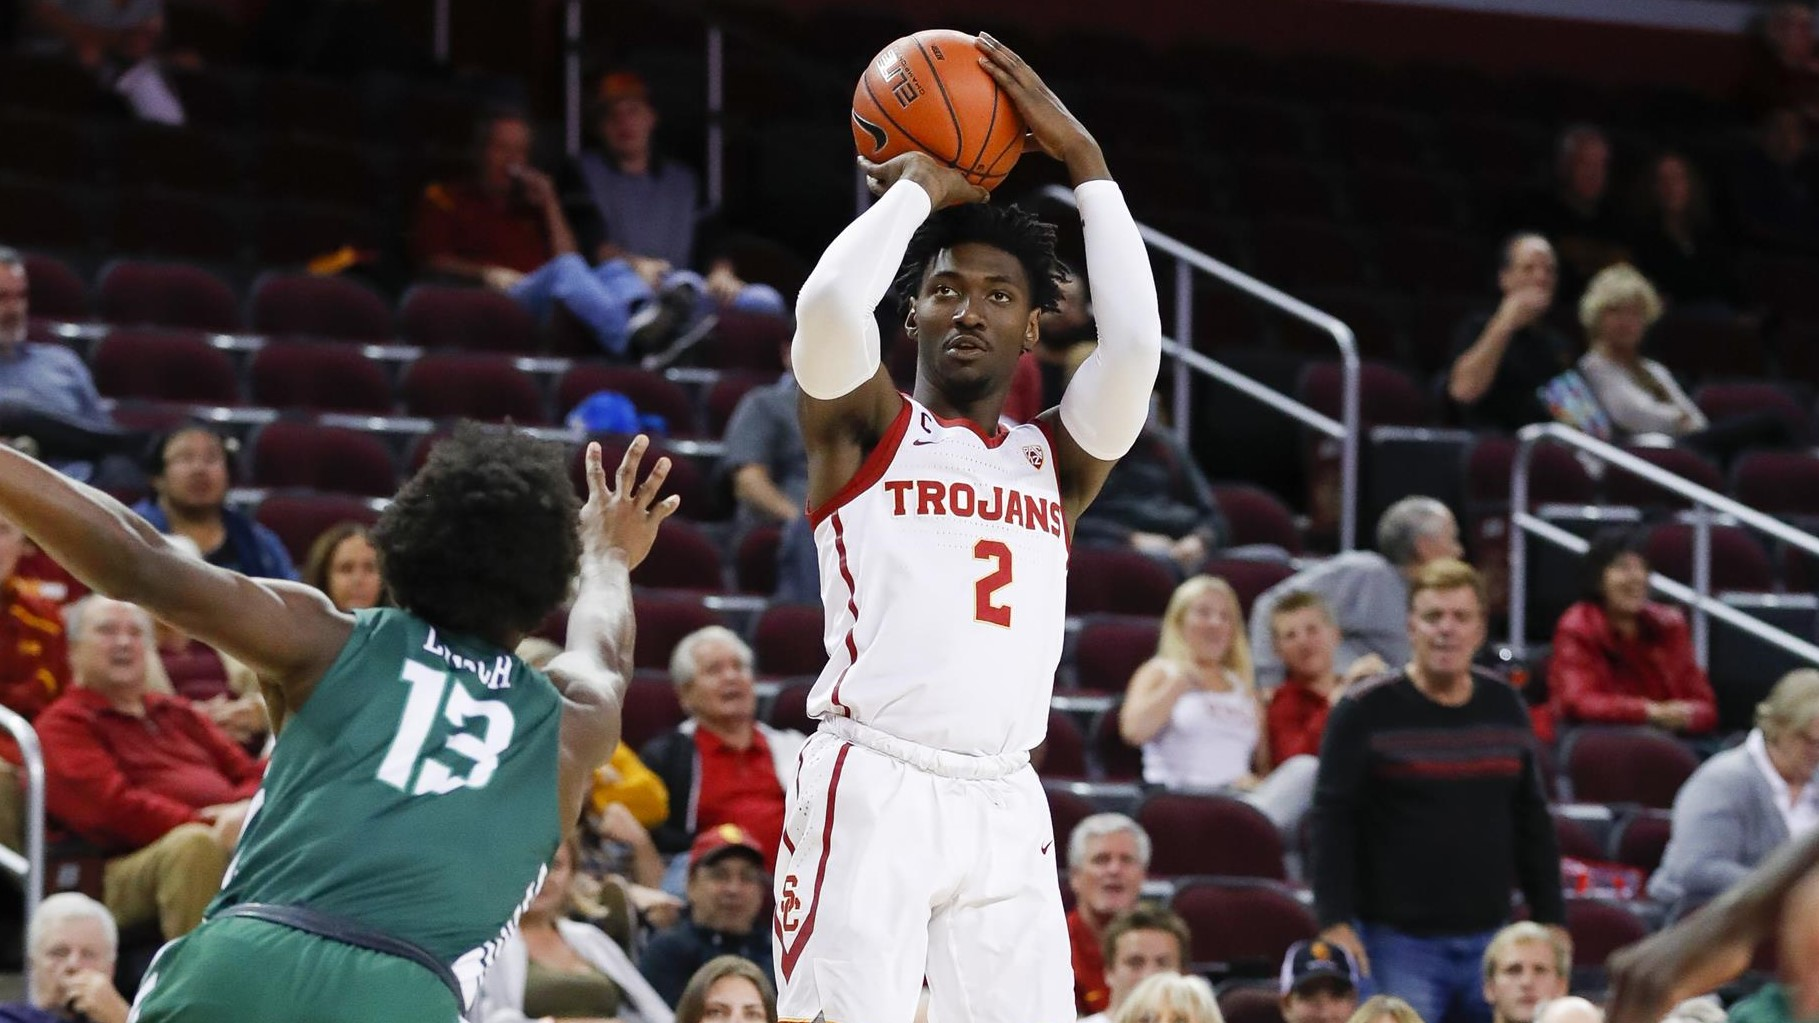 Usc Hosts Uc Davis Sunday In Final Nonconference Game Usc Athletics